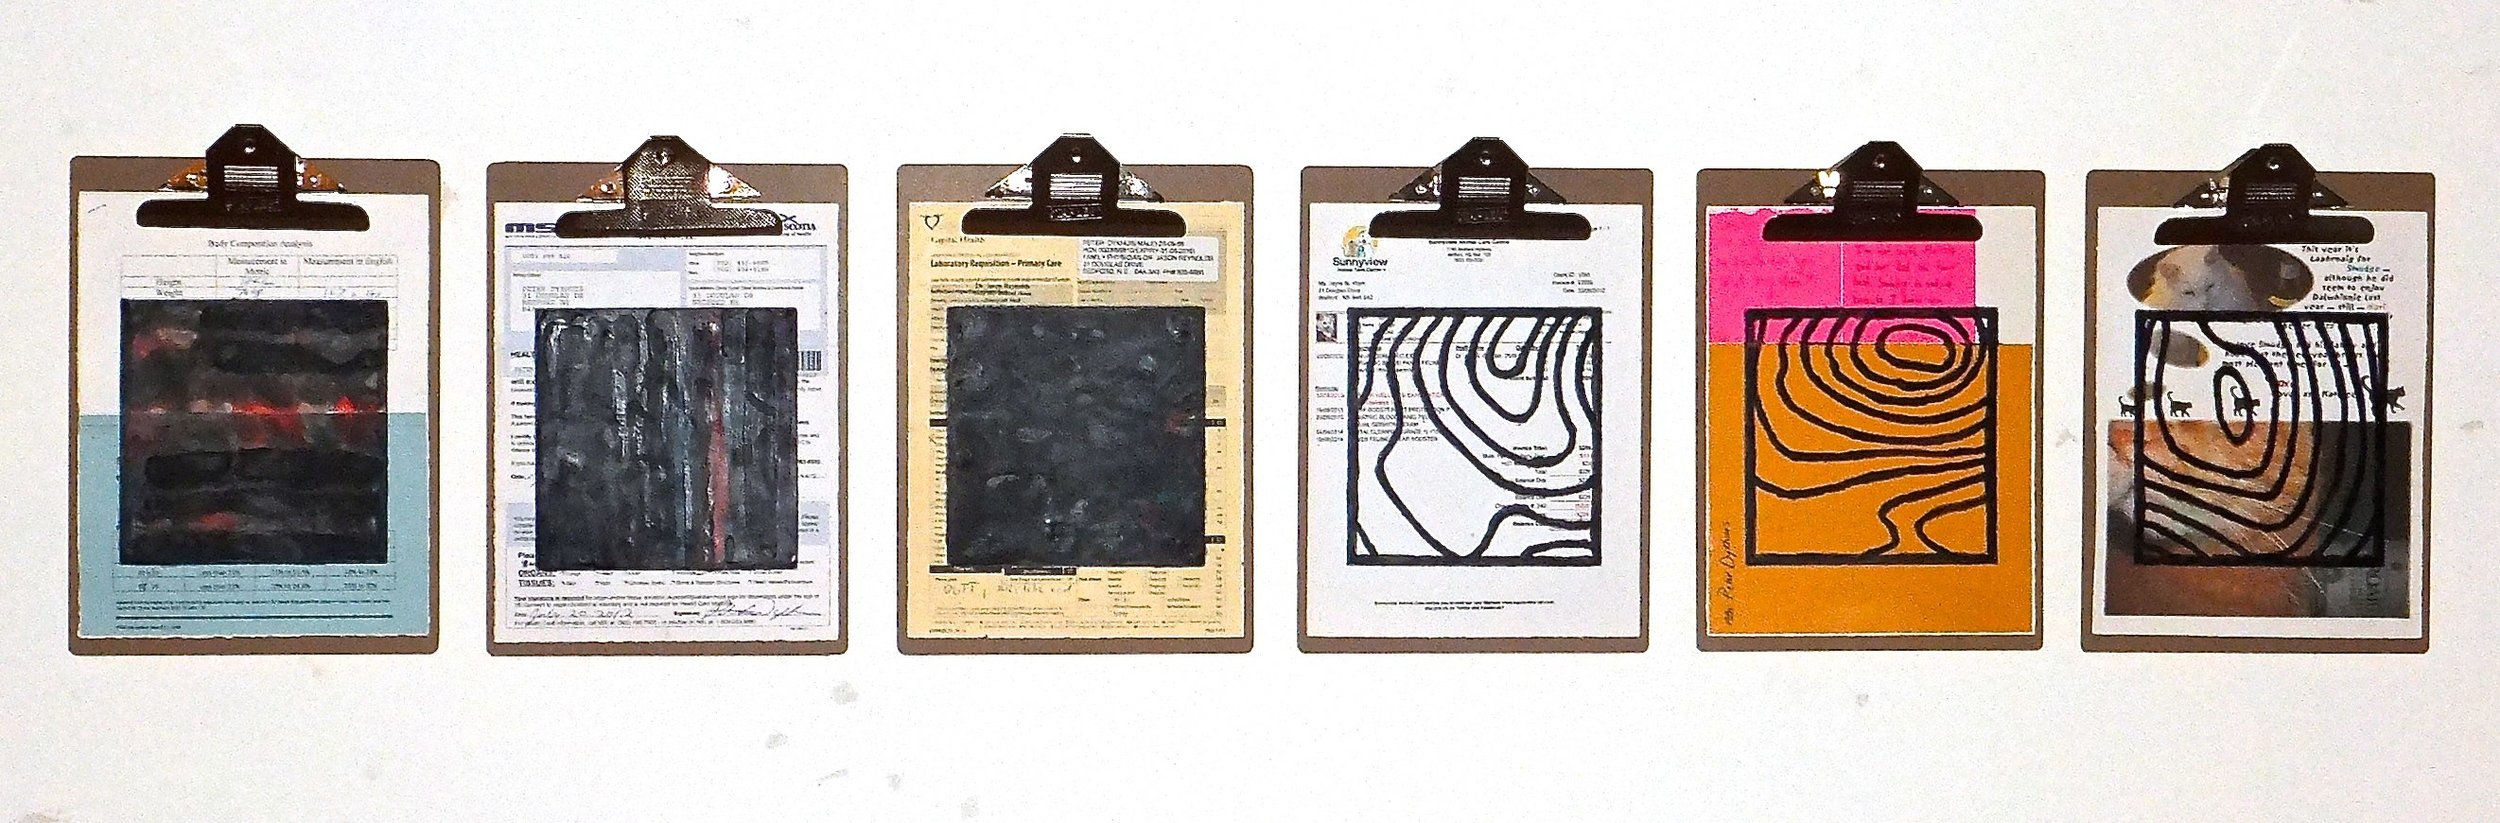 """Home Front #3, 2014 encaustic, mixed media collage on paper, mounted on 6 commercial clipboards, 13"""" × 59"""", set of clipboards depicted counts as one artwork, 450 CAD"""